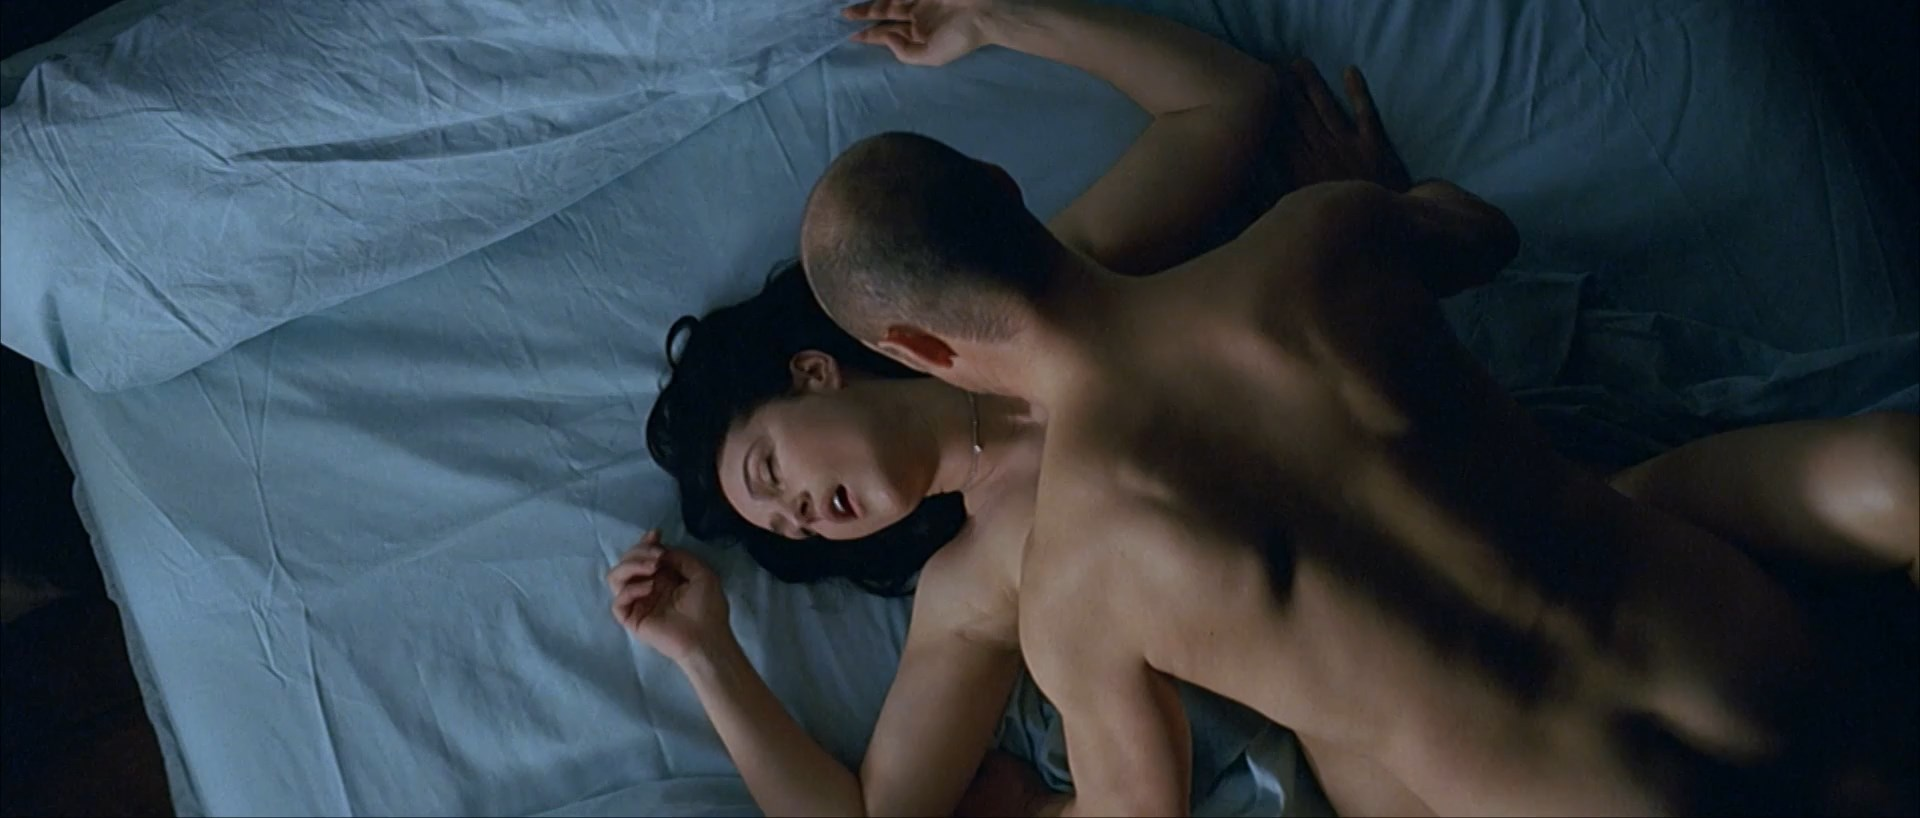 Monica Bellucci - How Much Do You Love Me (2005) HD 1080p